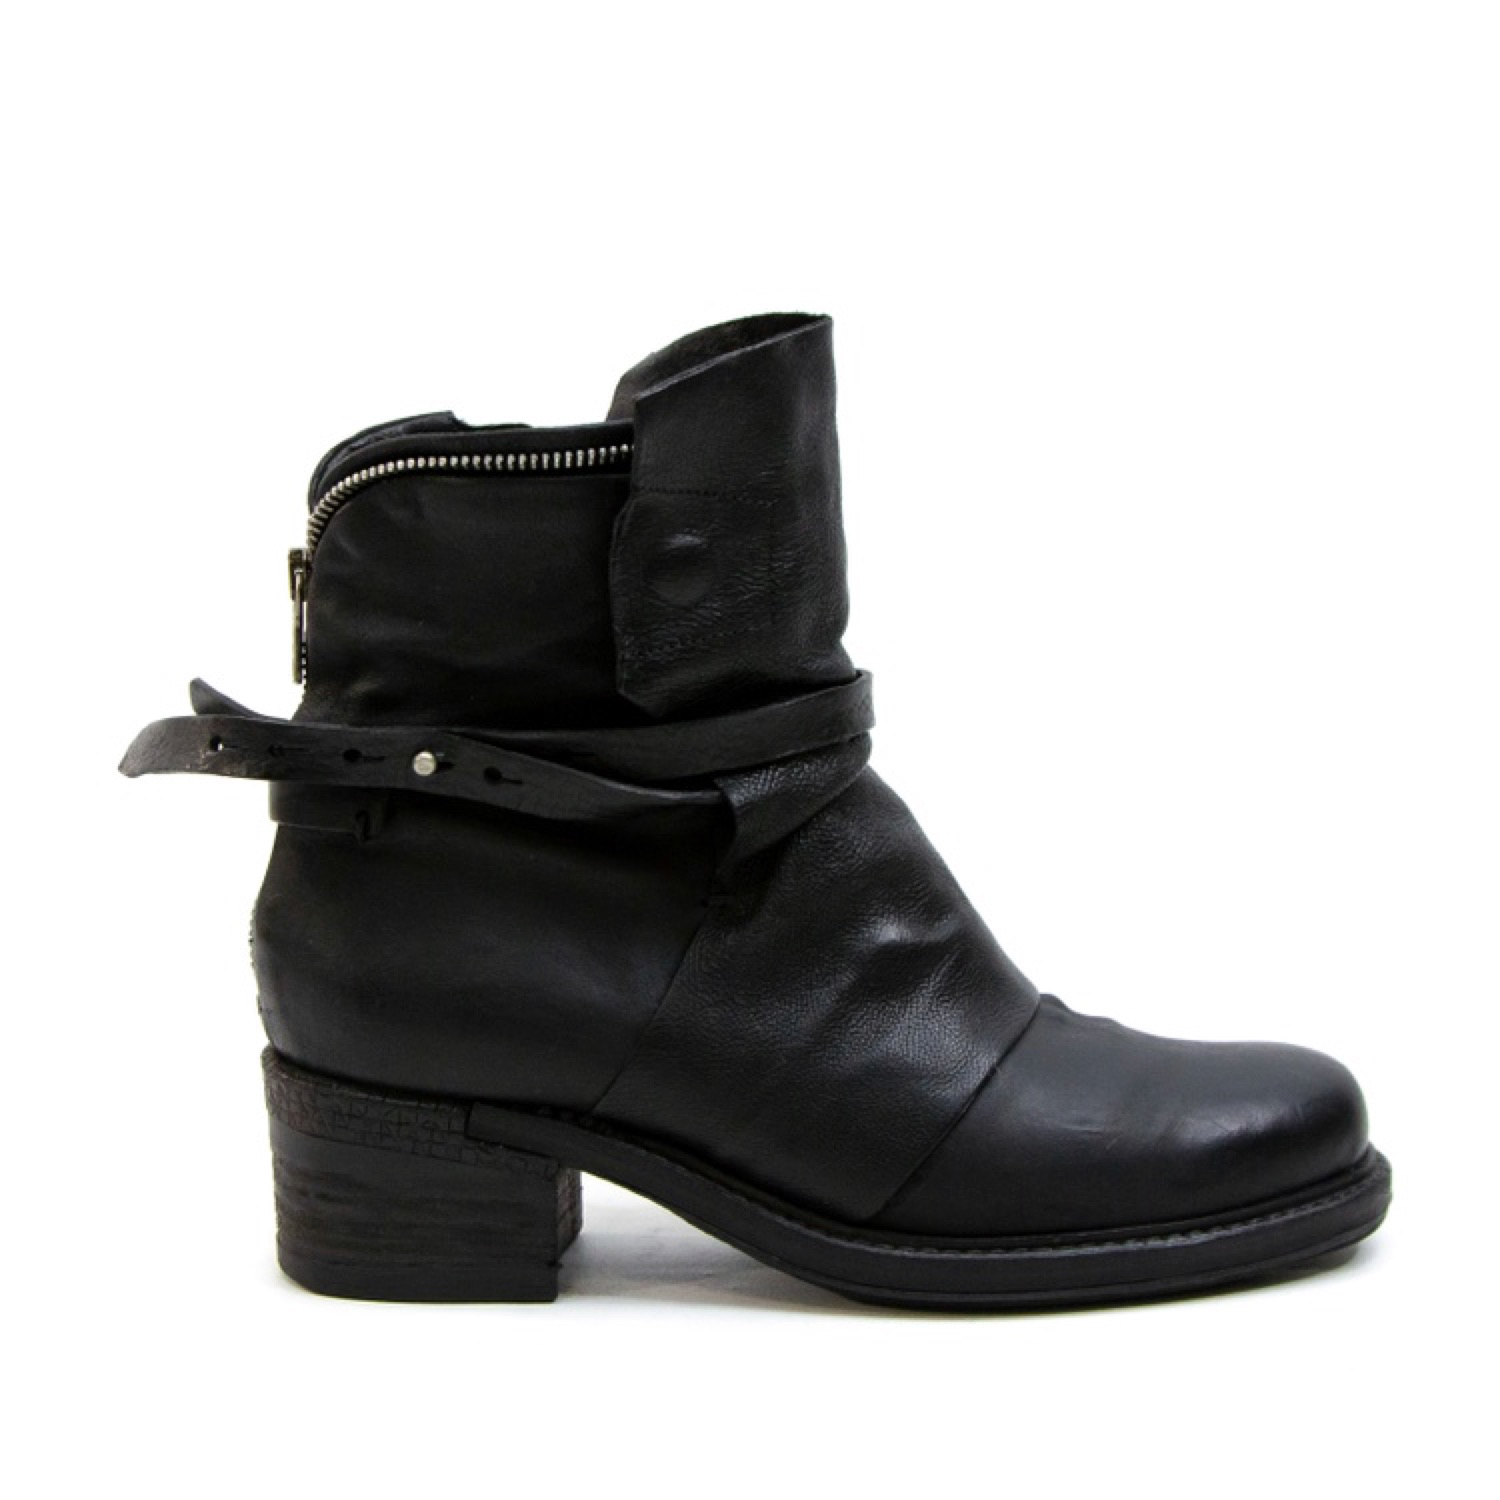 top quality look out for great prices A.S. 98 Black Leather Zip Up Boots